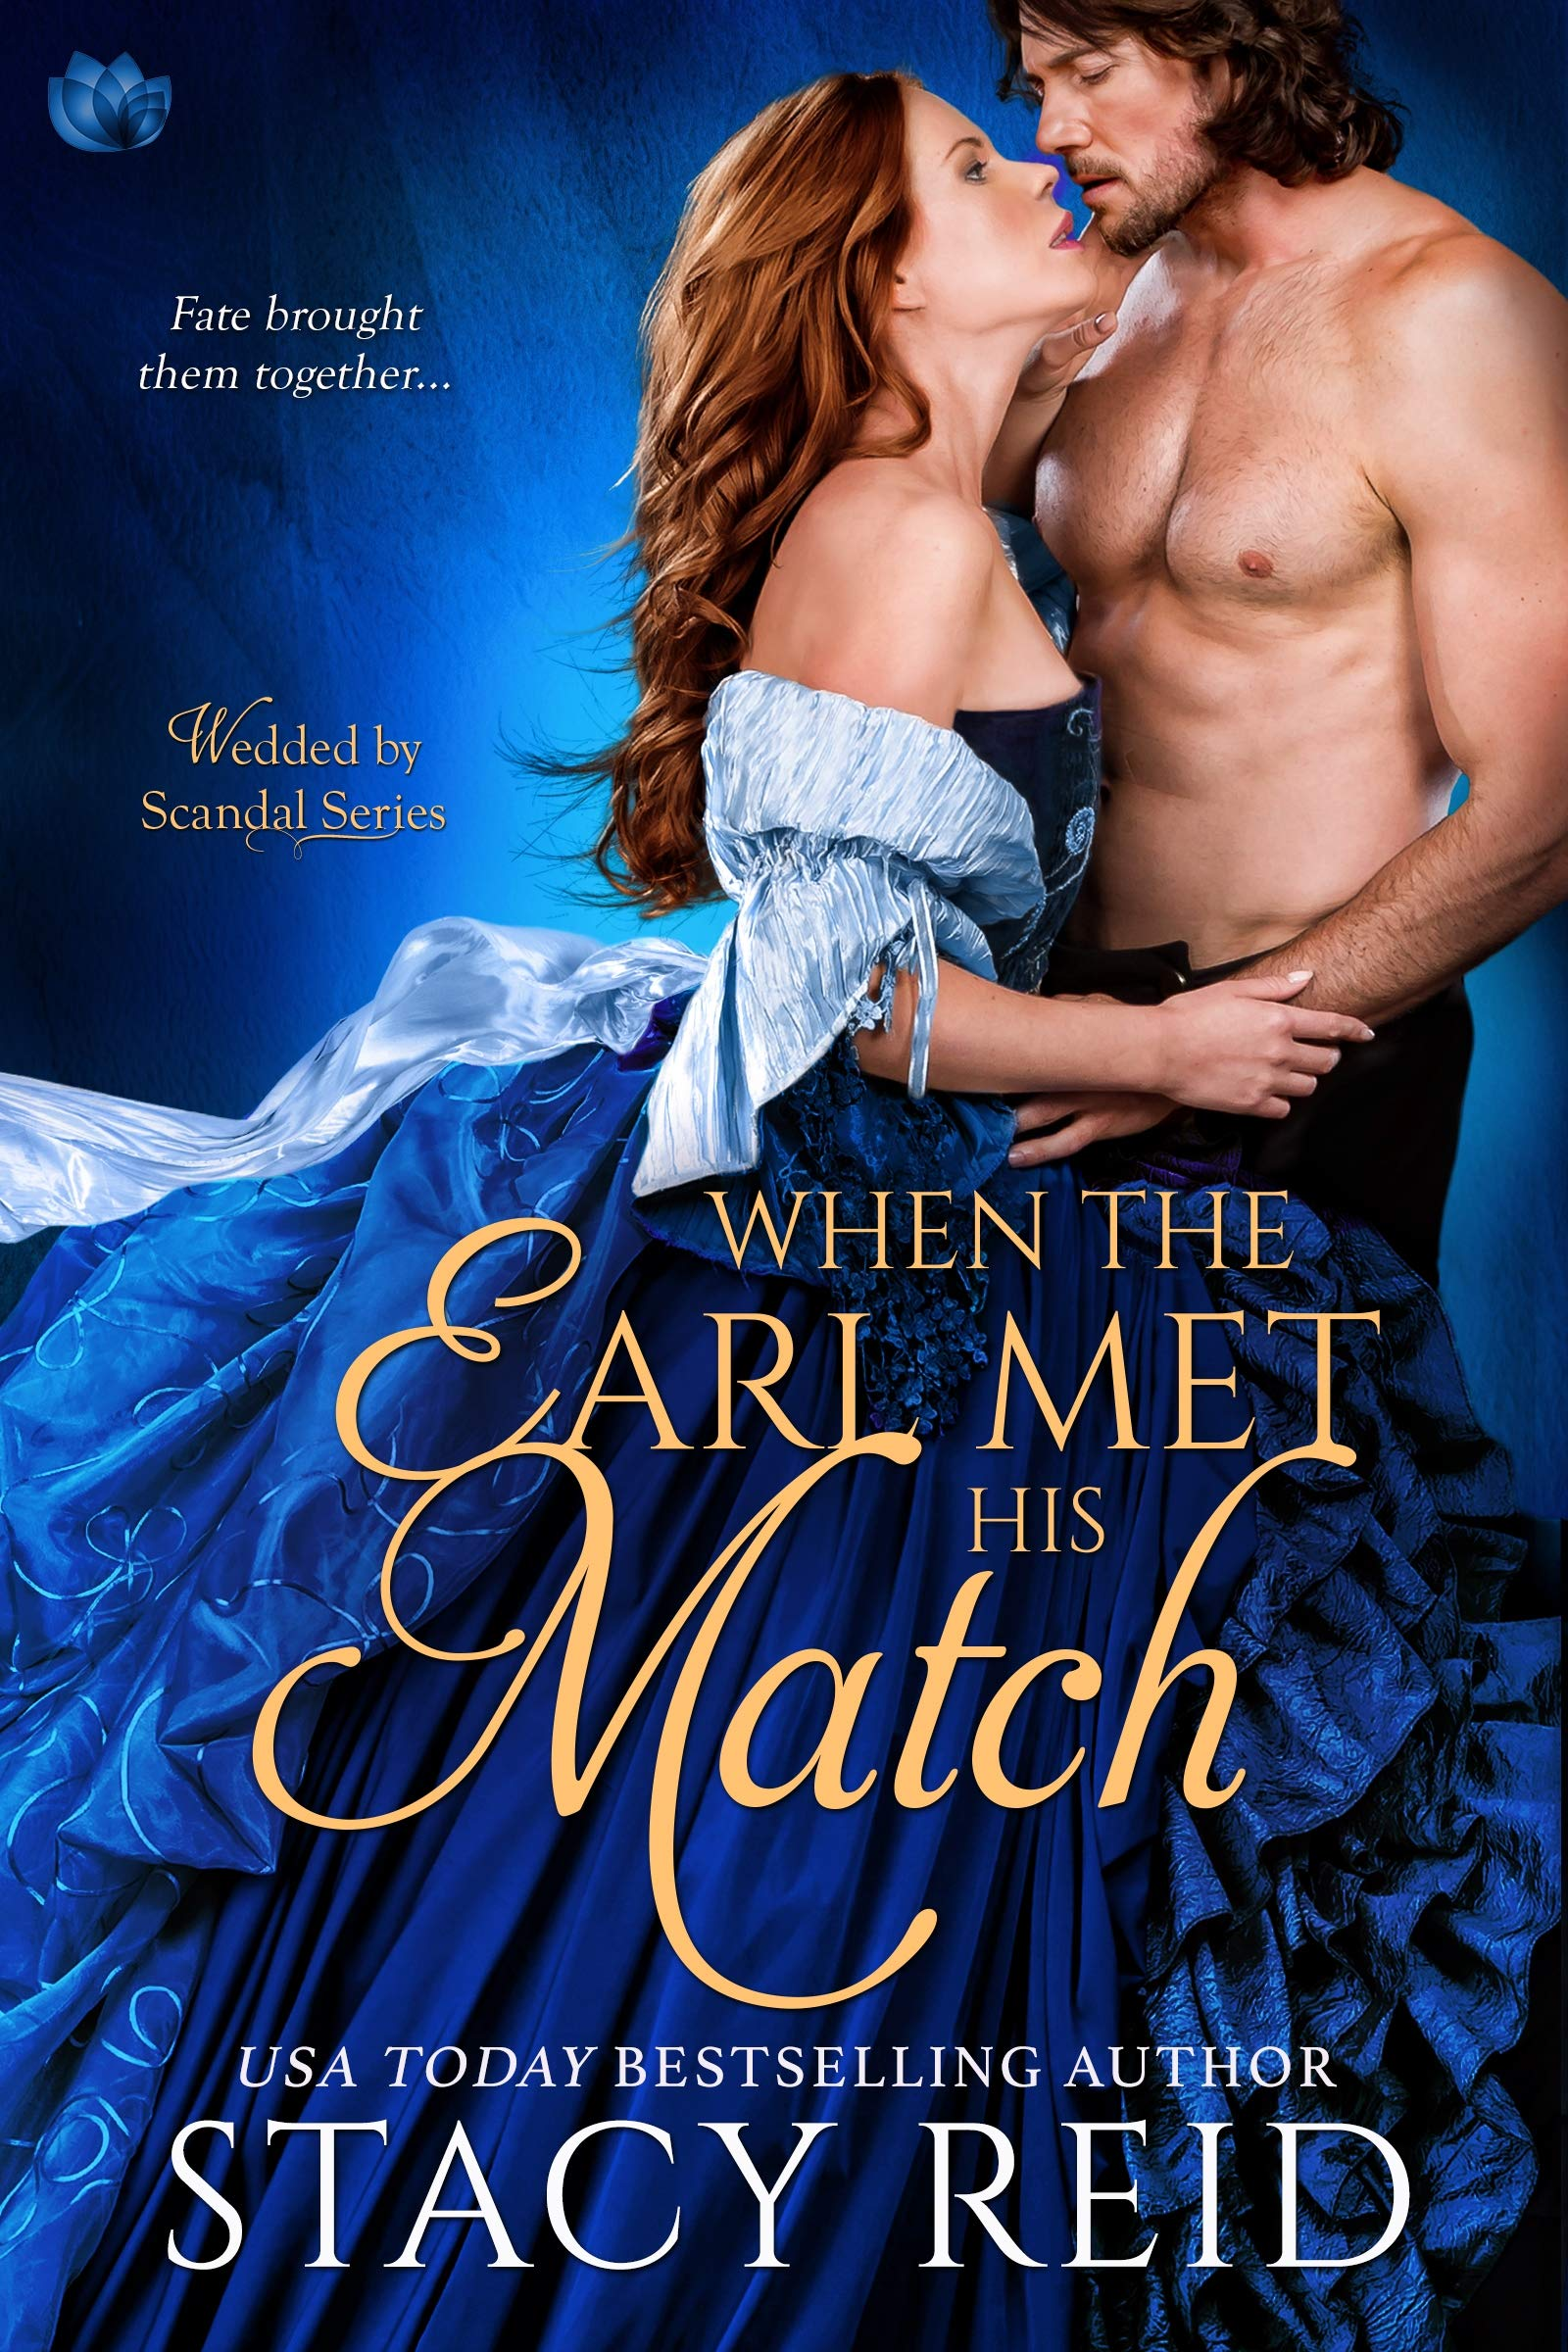 When the Earl Met His Match (Wedded by Scandal #4)